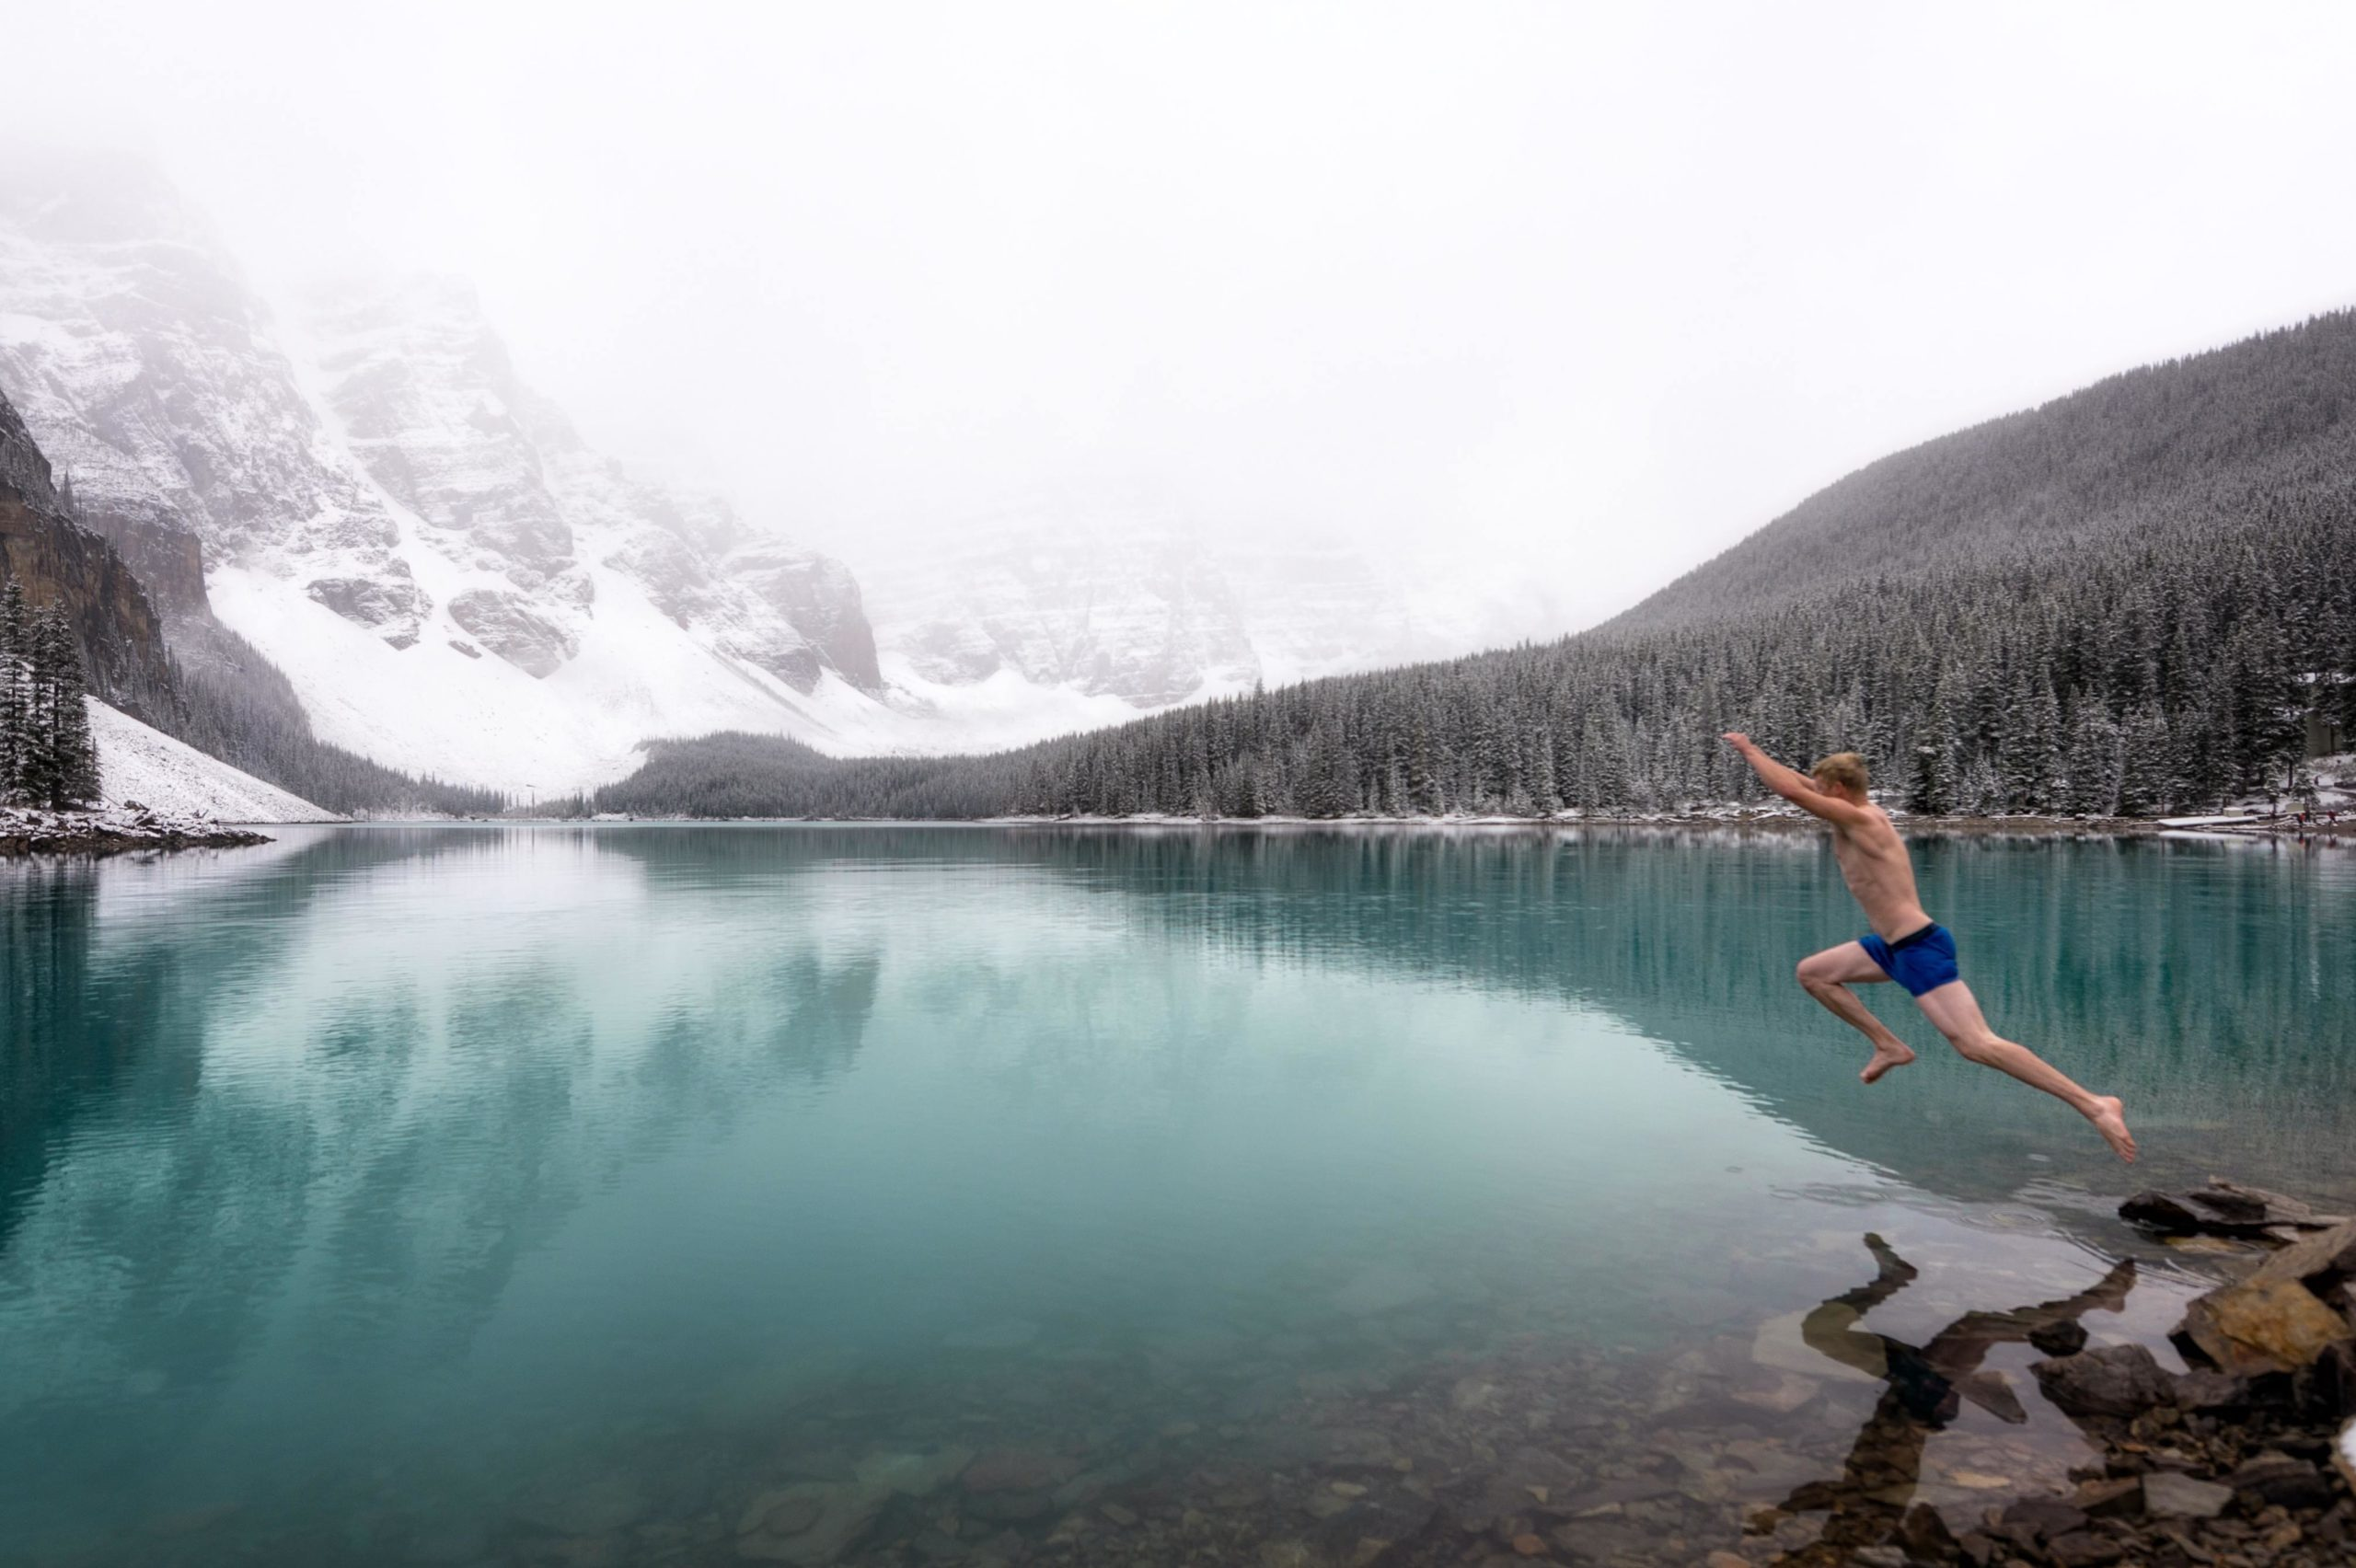 Shirtless Man Jumping into Cold Water